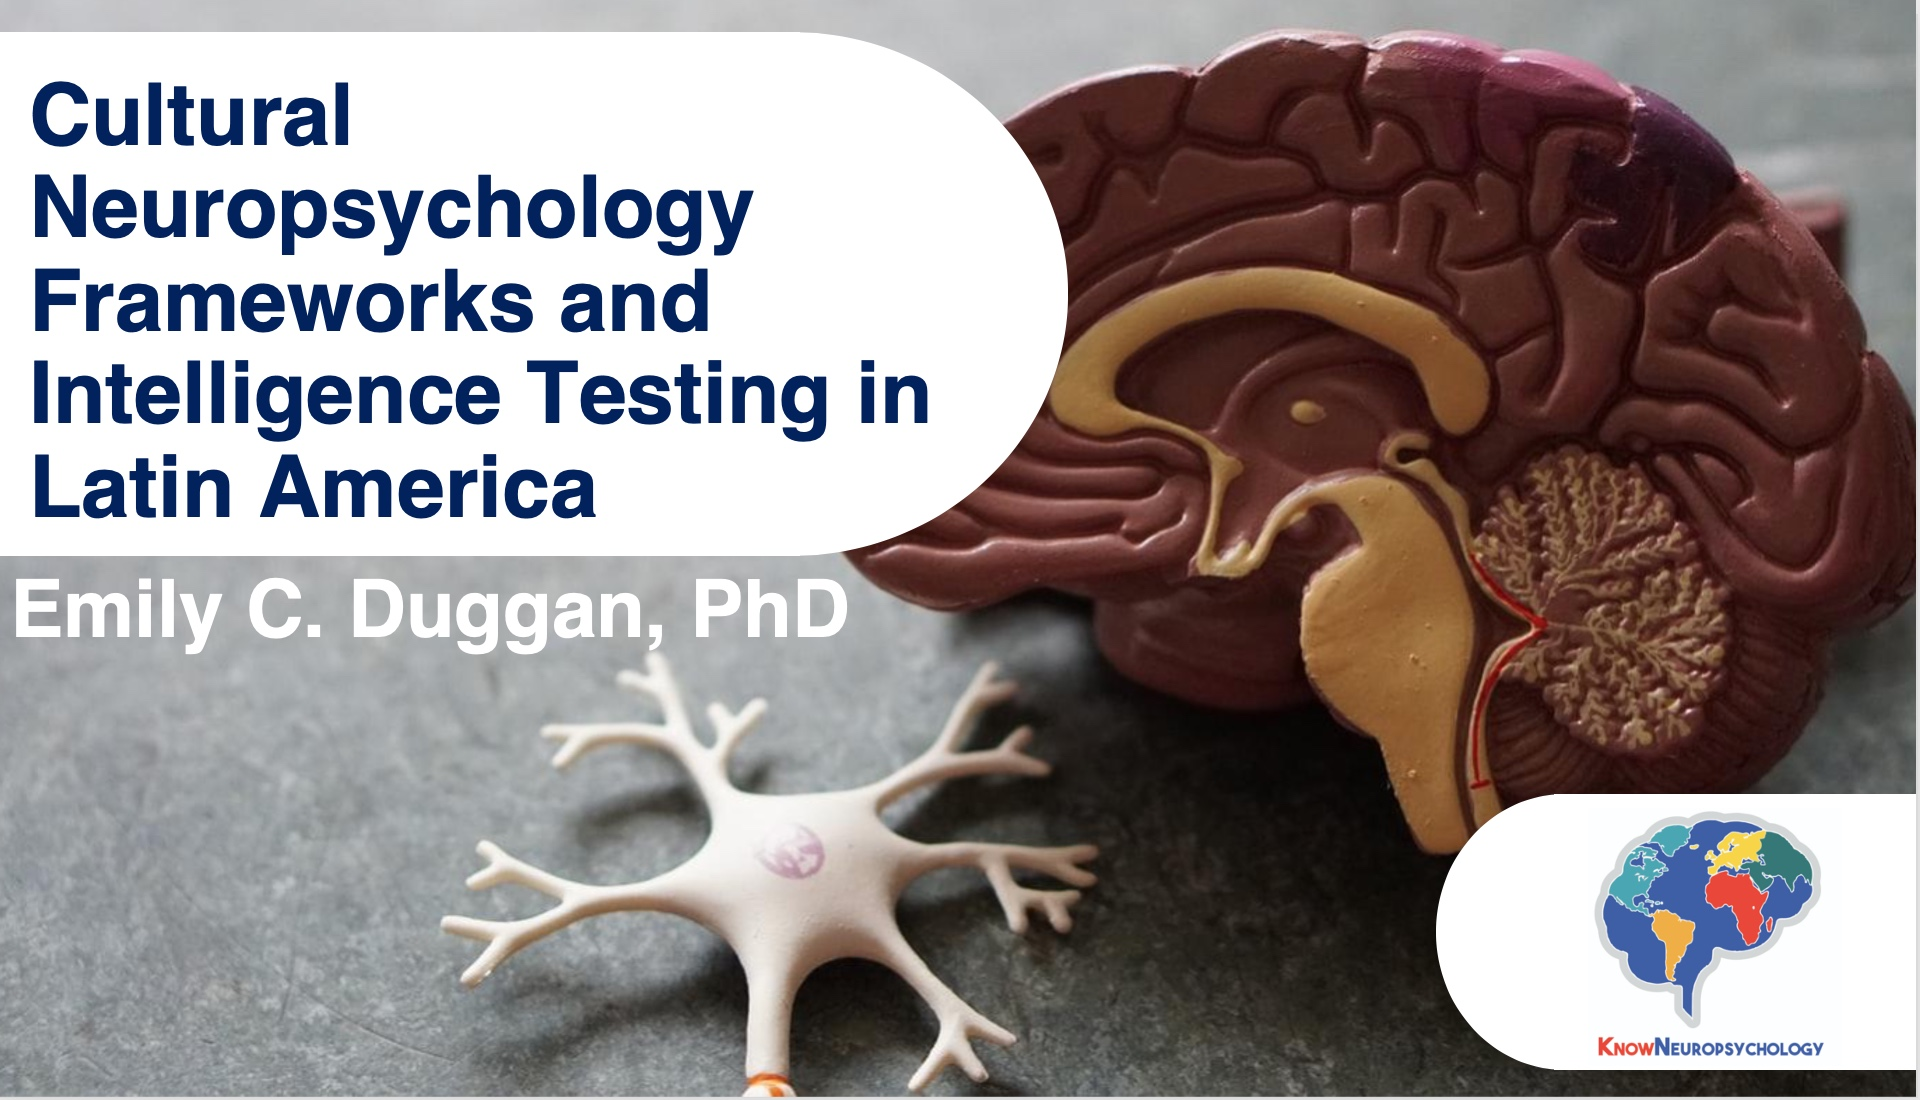 Cultural neuropsychology frameworks and intelligence testing in Latin American lecture recording